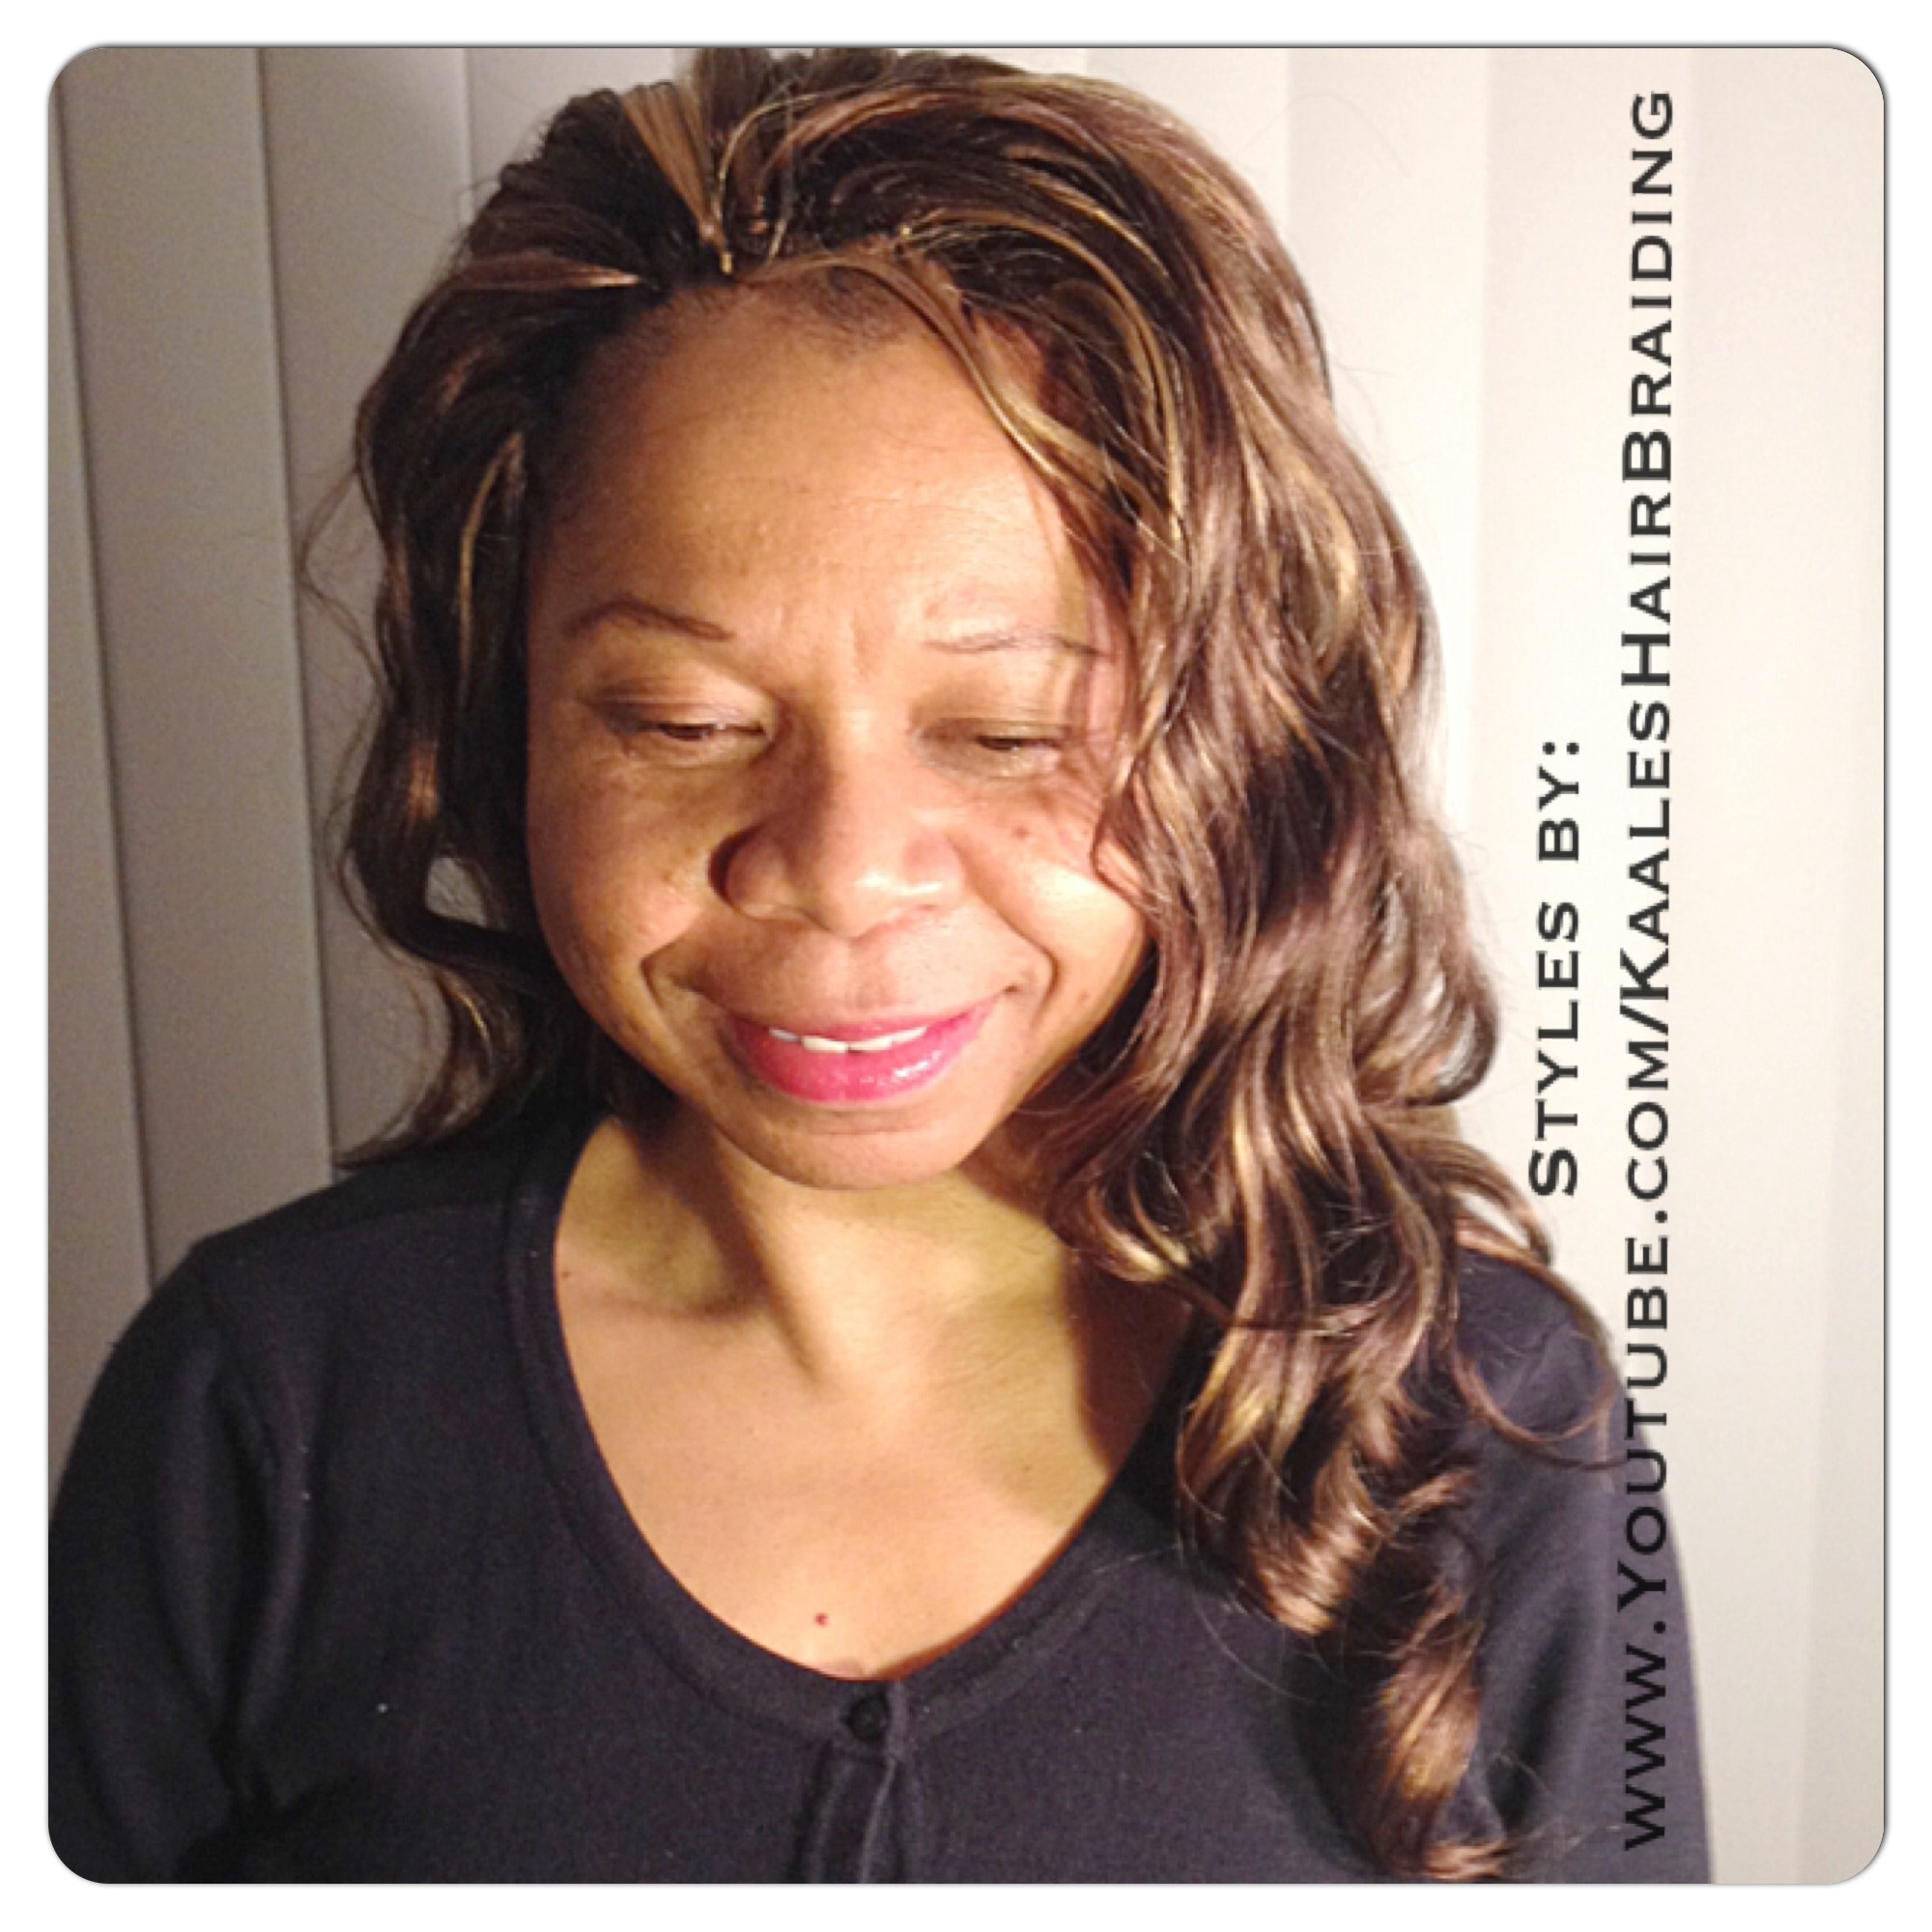 Tree Braids by Kaale- invisible hairline cornrow treebraids Small/SmallMedium size, body wave hair.